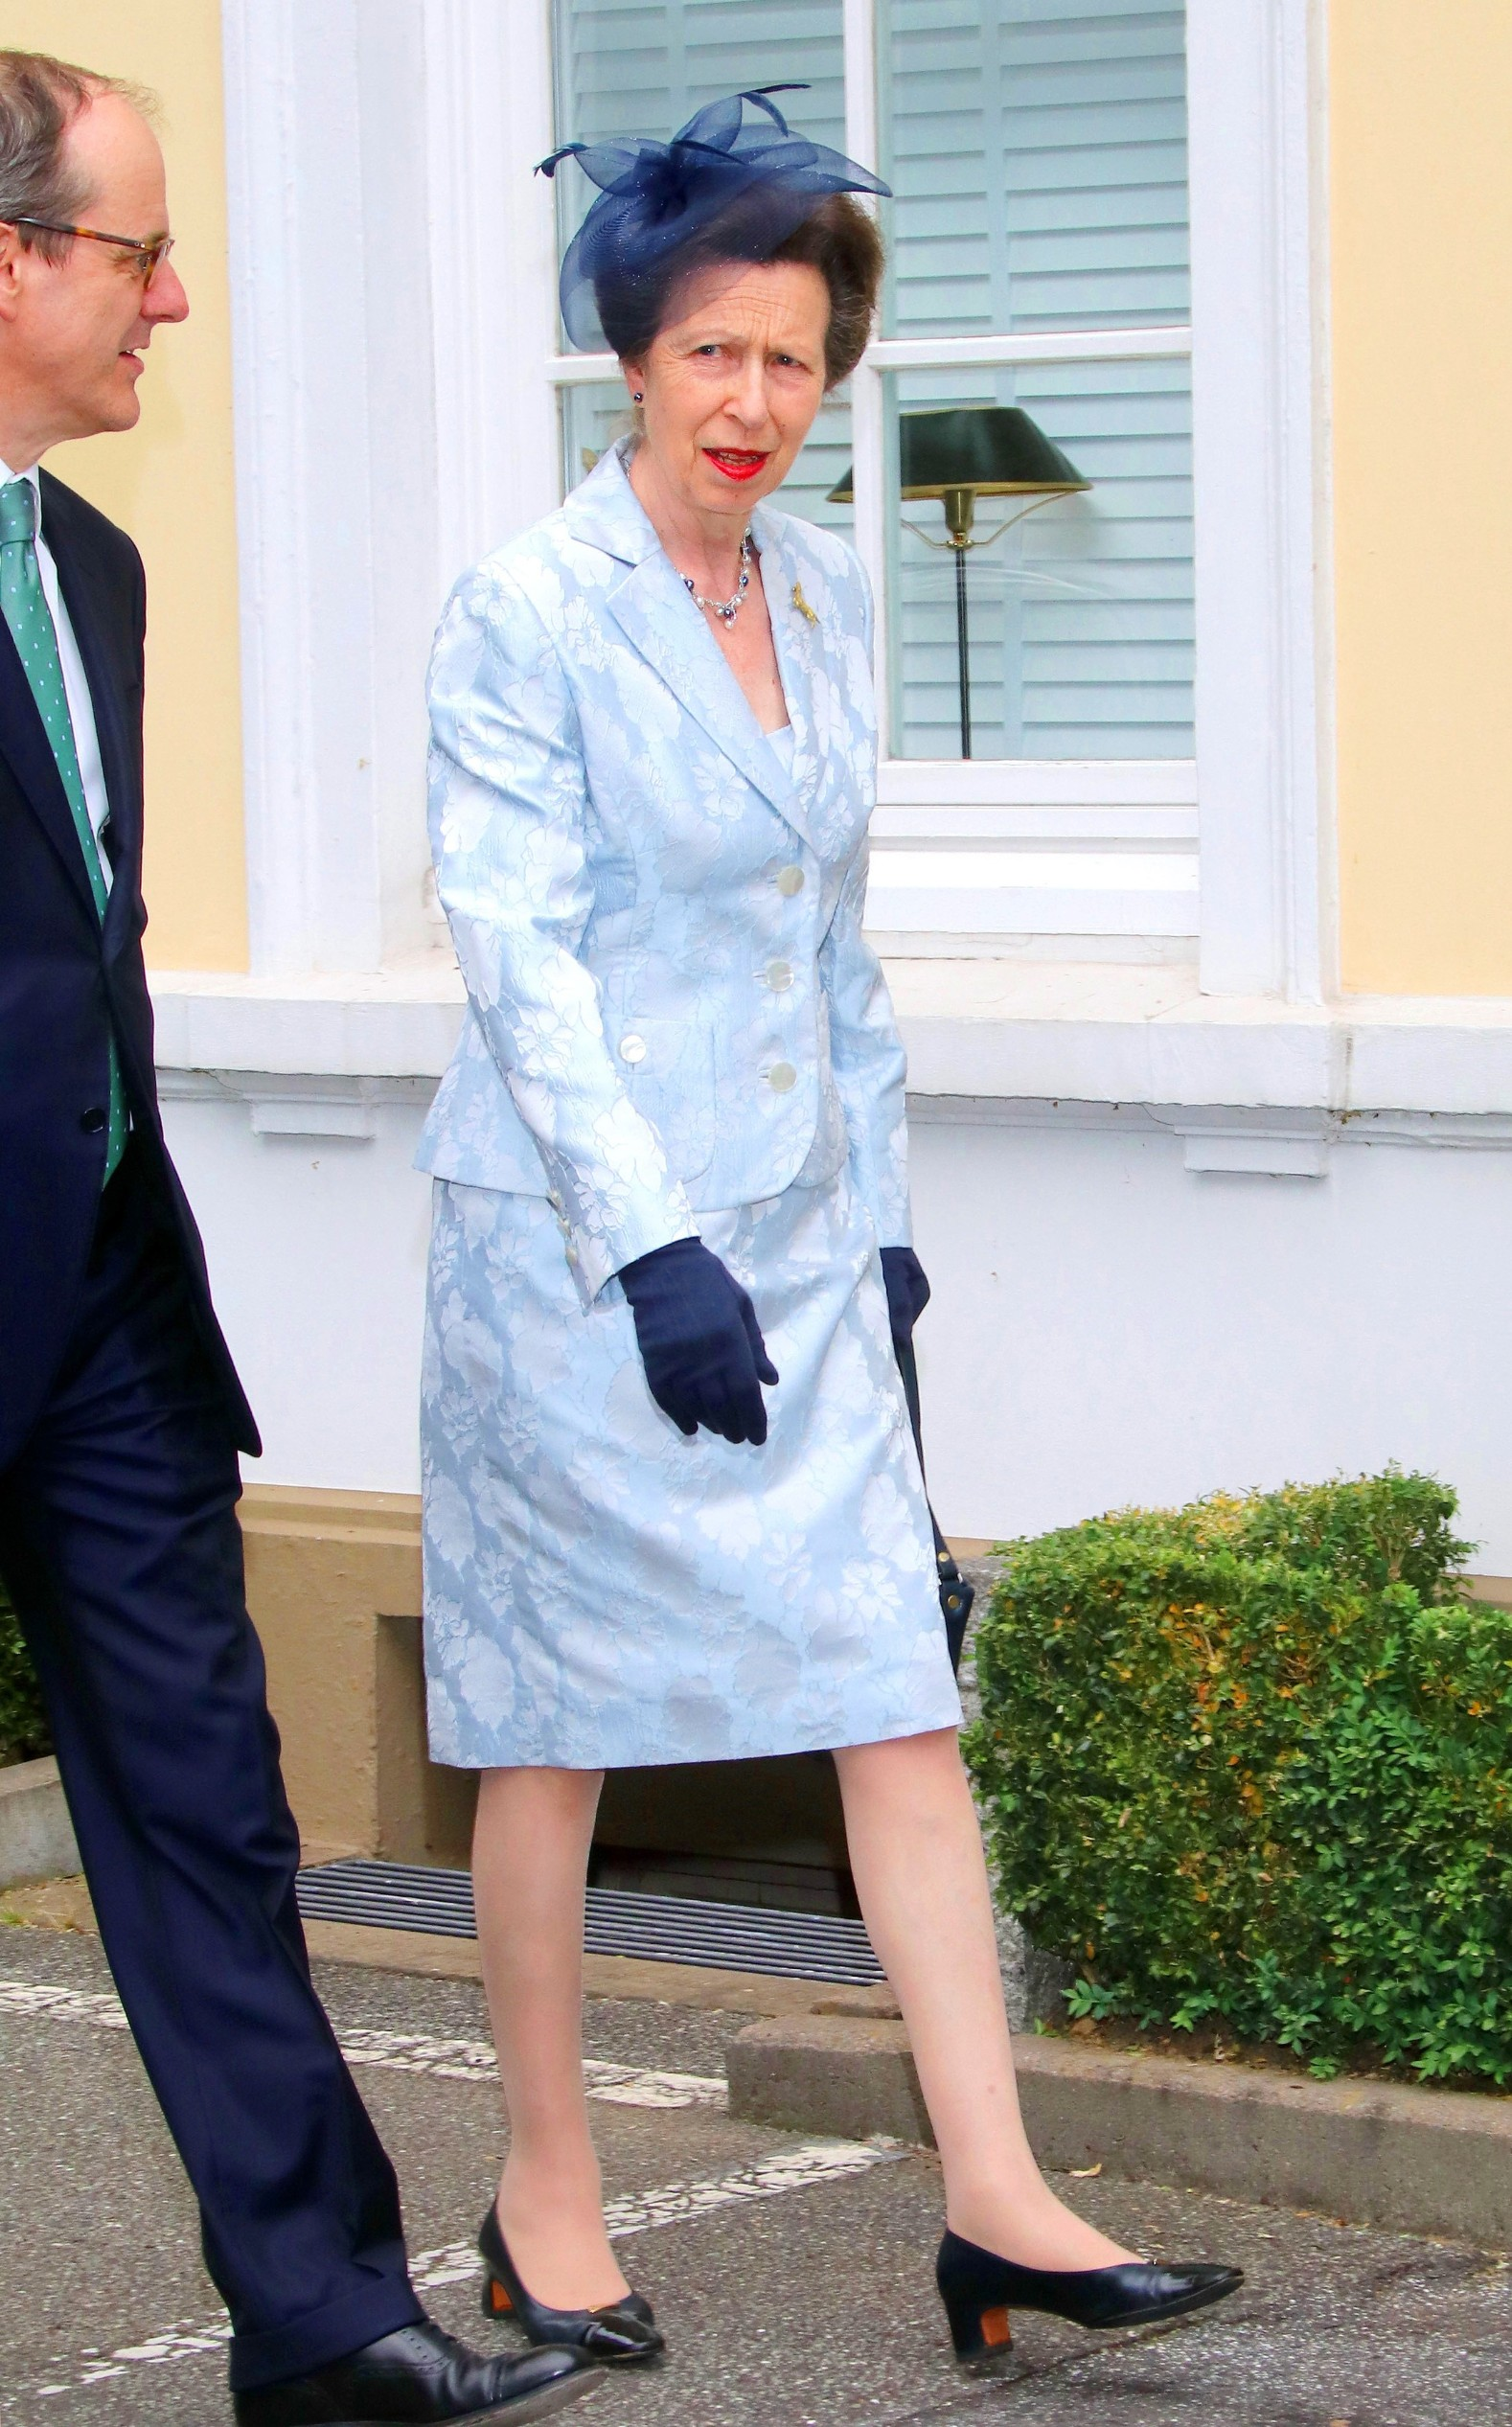 Princess Anne Queen Elizabeth II. Birthday Celebration at the Anglo-German Club, Hamburg, Germany - 15 Jun 2017,Image: 338039834, License: Rights-managed, Restrictions: , Model Release: no, Credit line: action press / Shutterstock Editorial / Profimedia